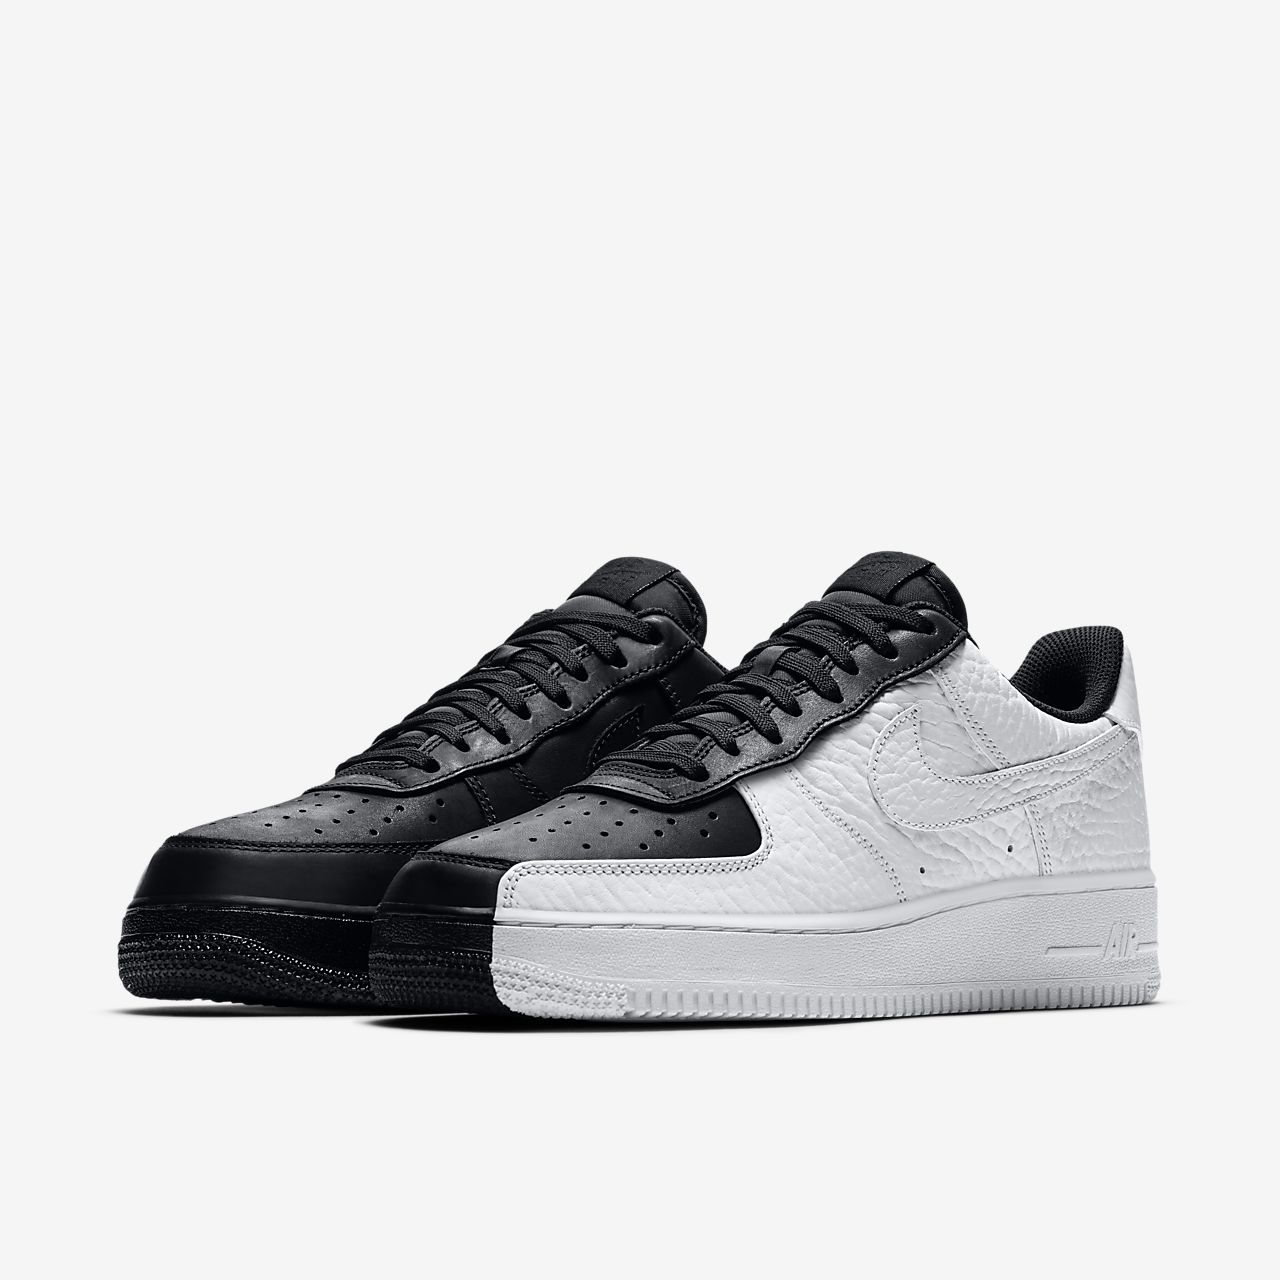 nike air force 1 07 premium black/white-black